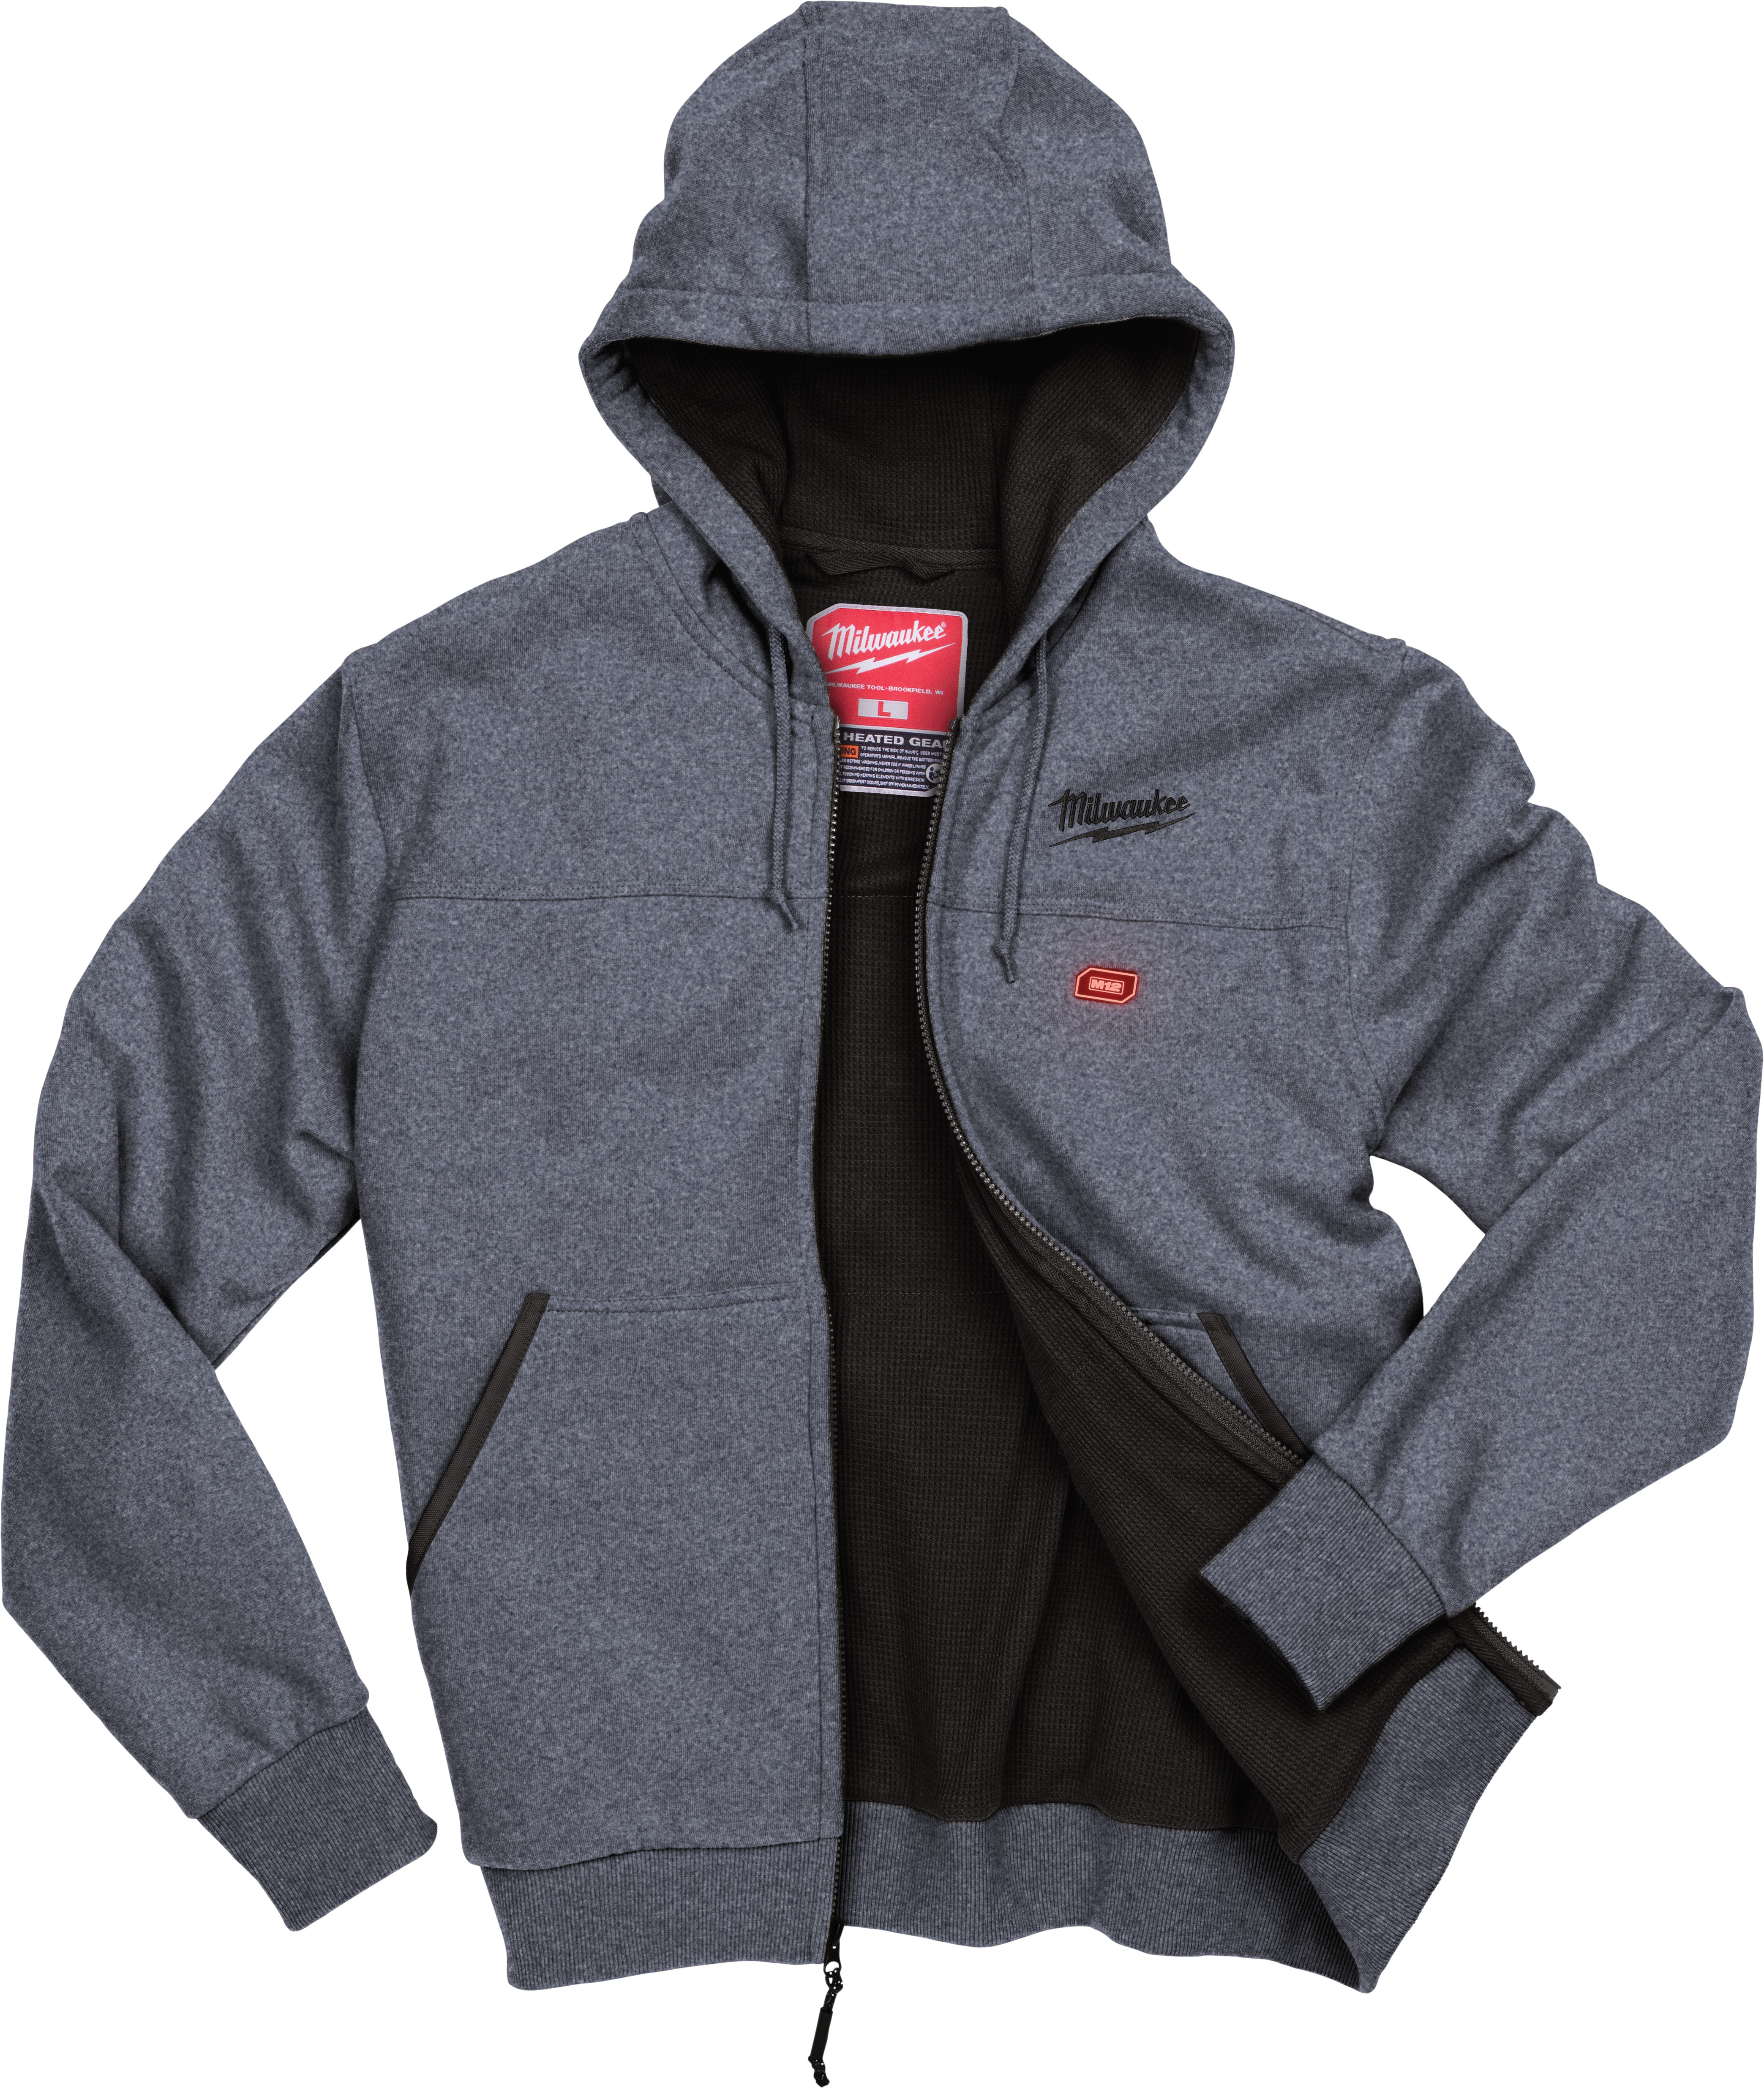 Milwaukee 301G-20 M12 Gray Heated Hoodie (Hoodie Only)